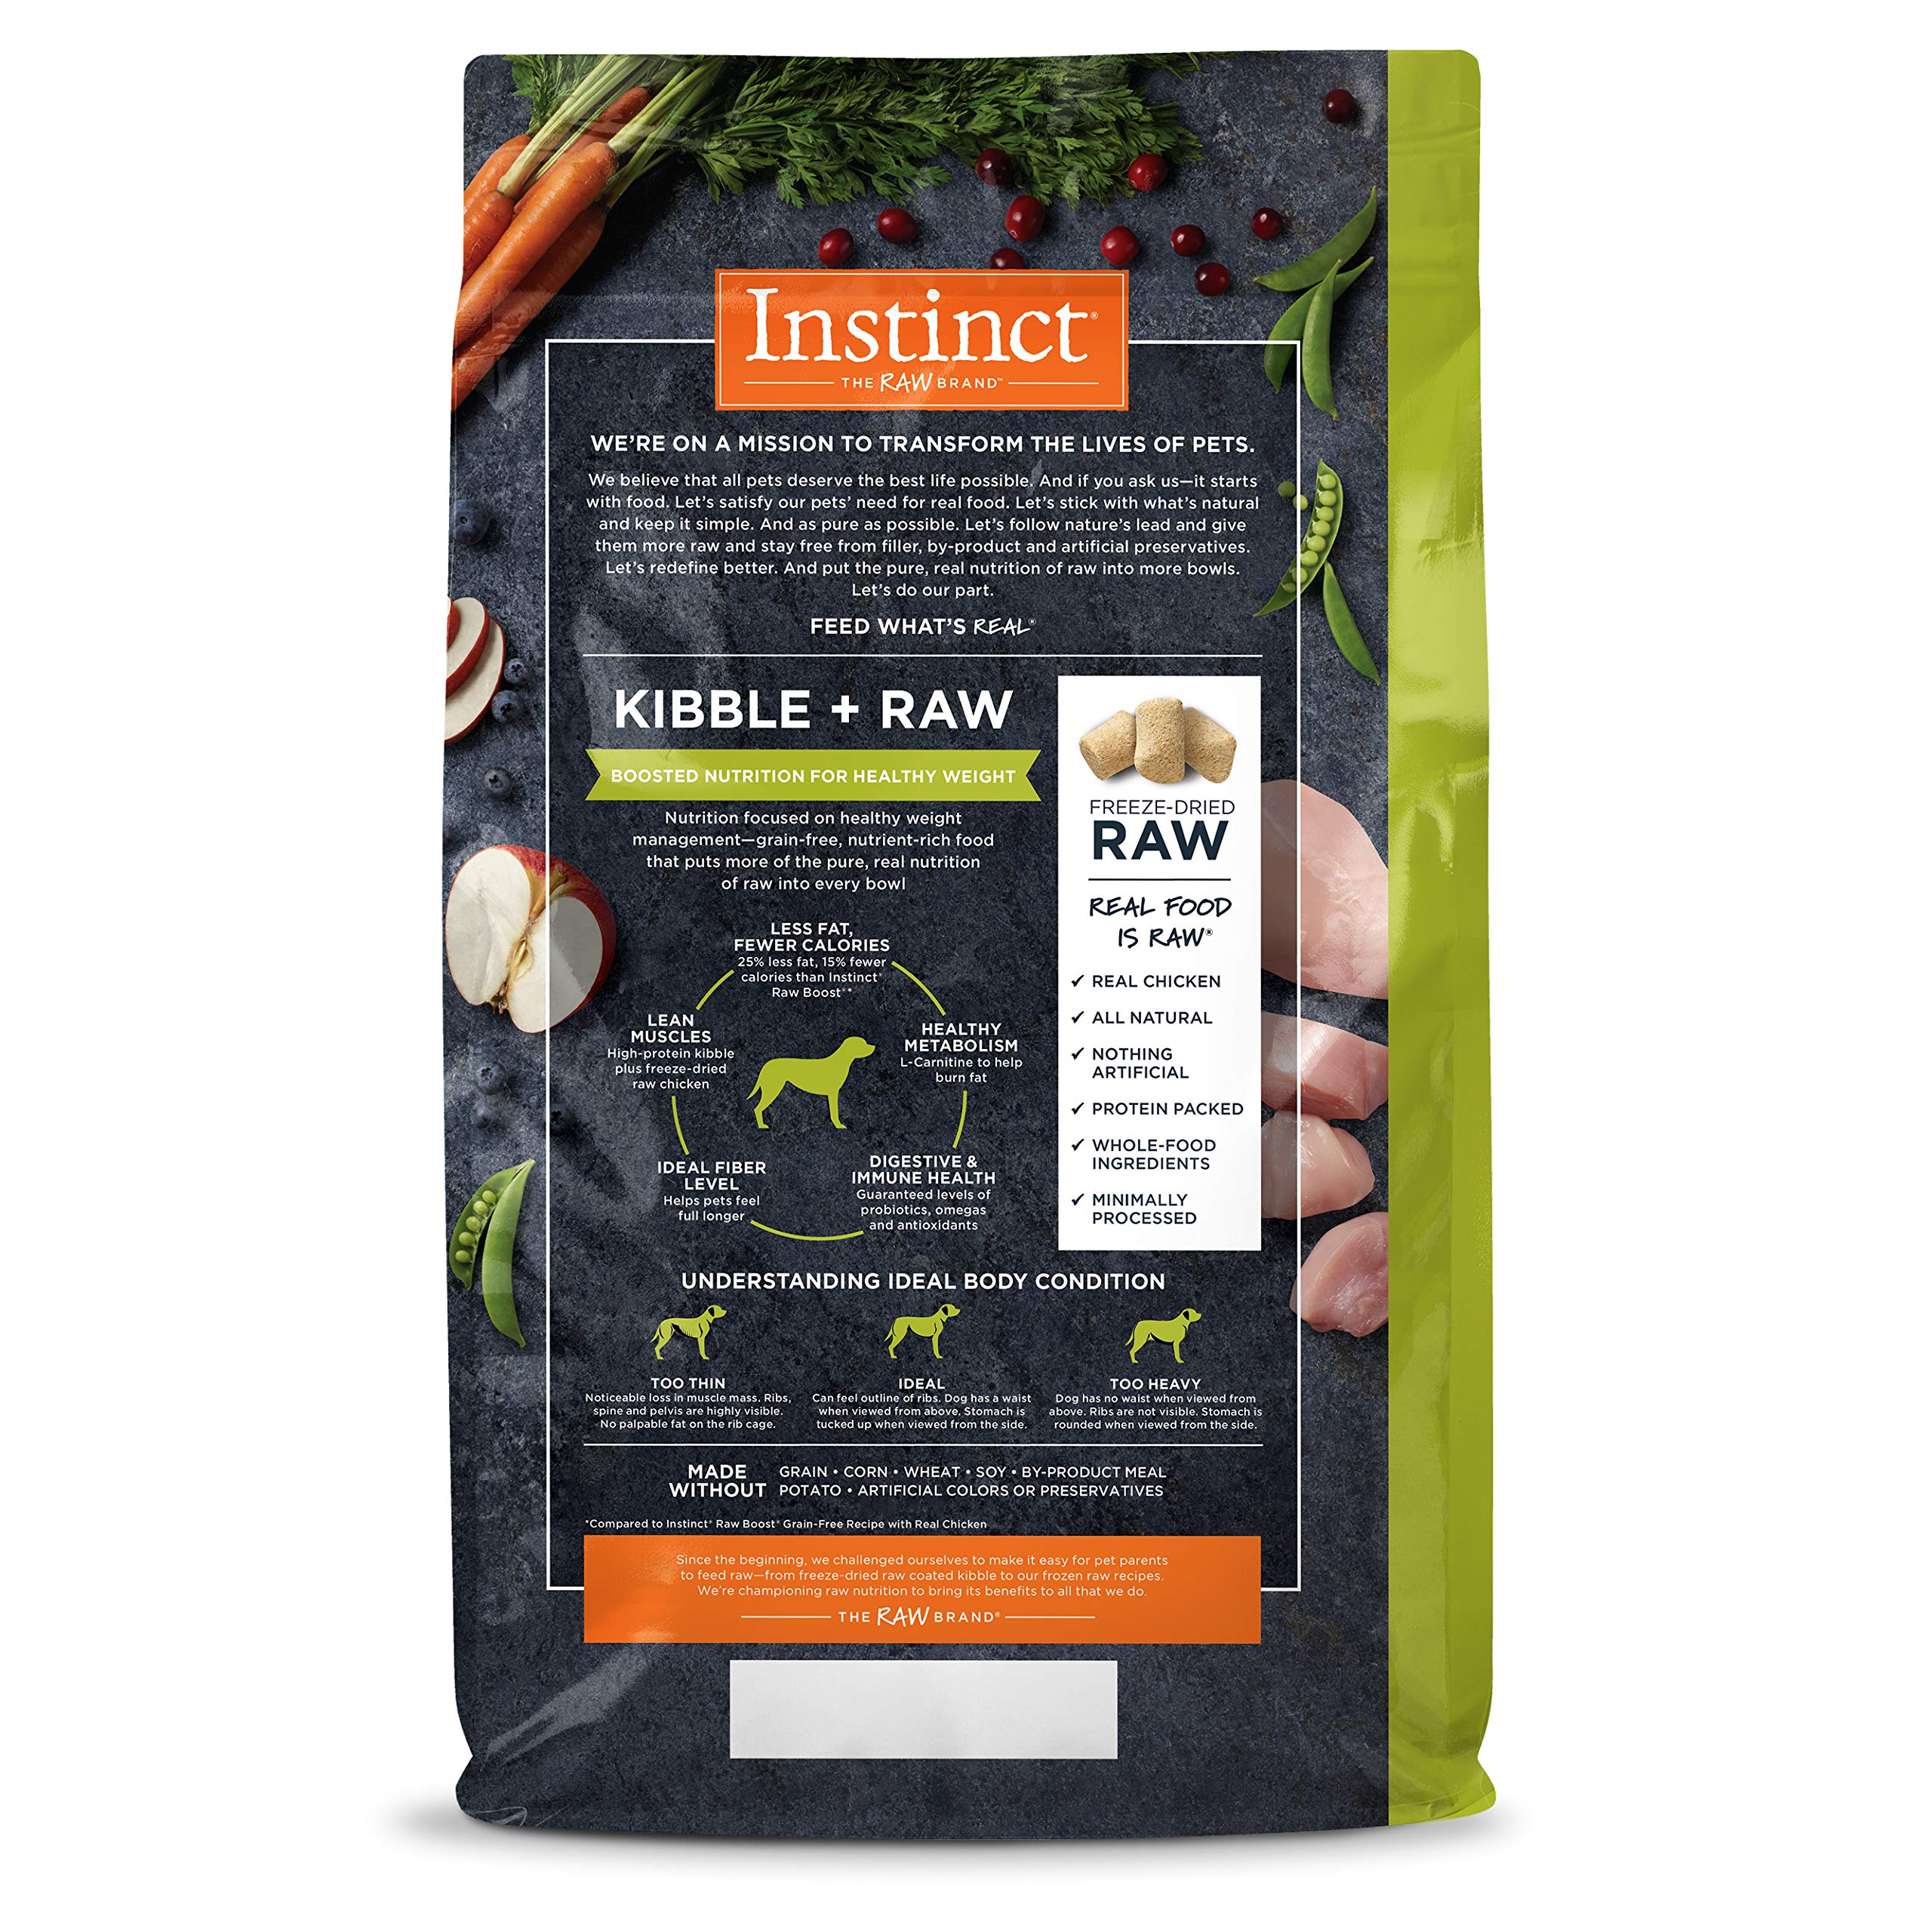 Instinct Raw Boost Healthy Weight Grain Free Recipe with Real Chicken Natural Dry Dog Food by Nature's Variety, 20 lb. Bag by Instinct (Image #2)